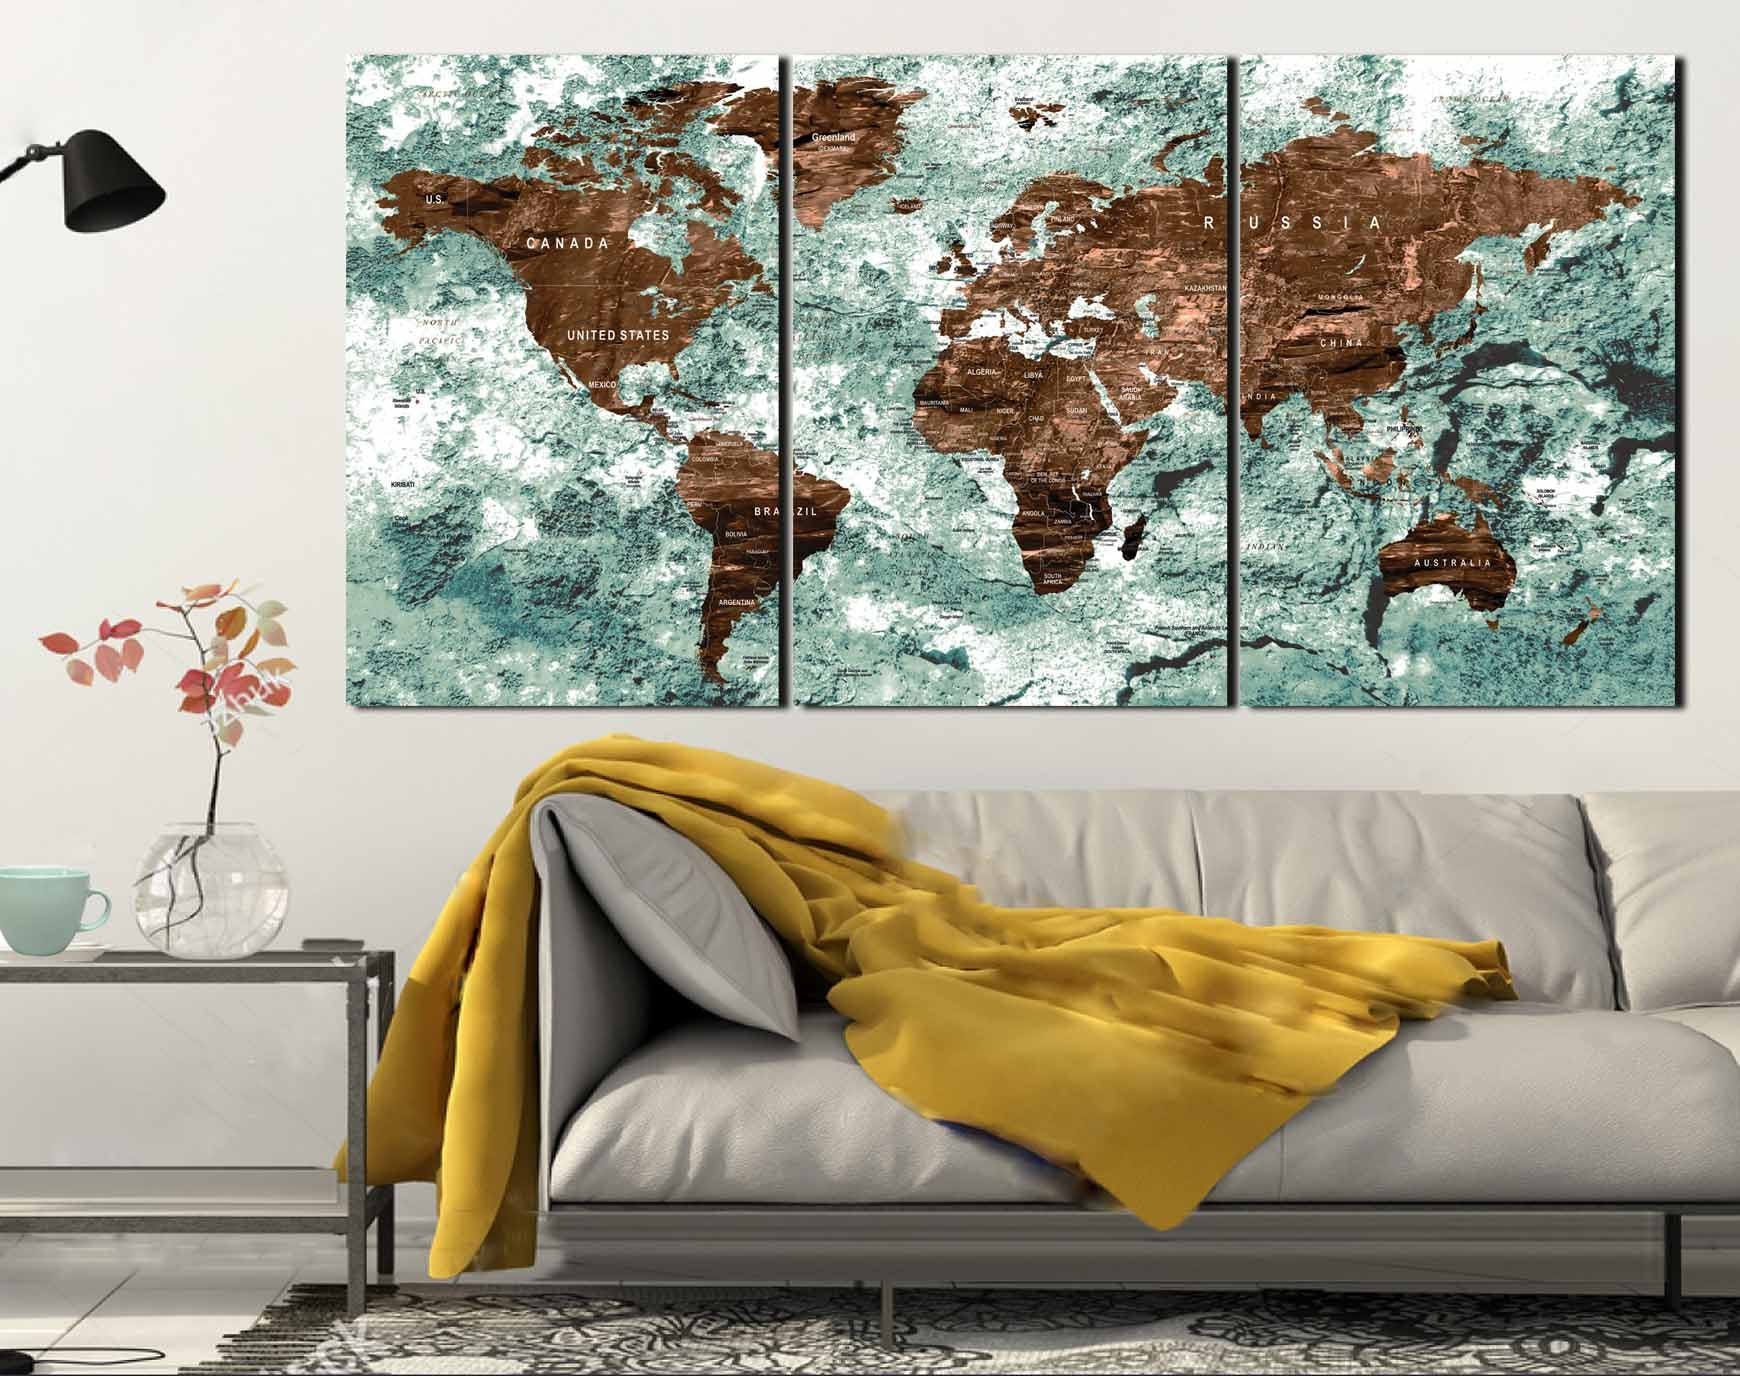 Genial World Map,World Map Wall Art,World Map Canvas,World Map Push Pin,Push Pin  Map Canvas,Push Pin World Map,Large World Map,Office Wall Art